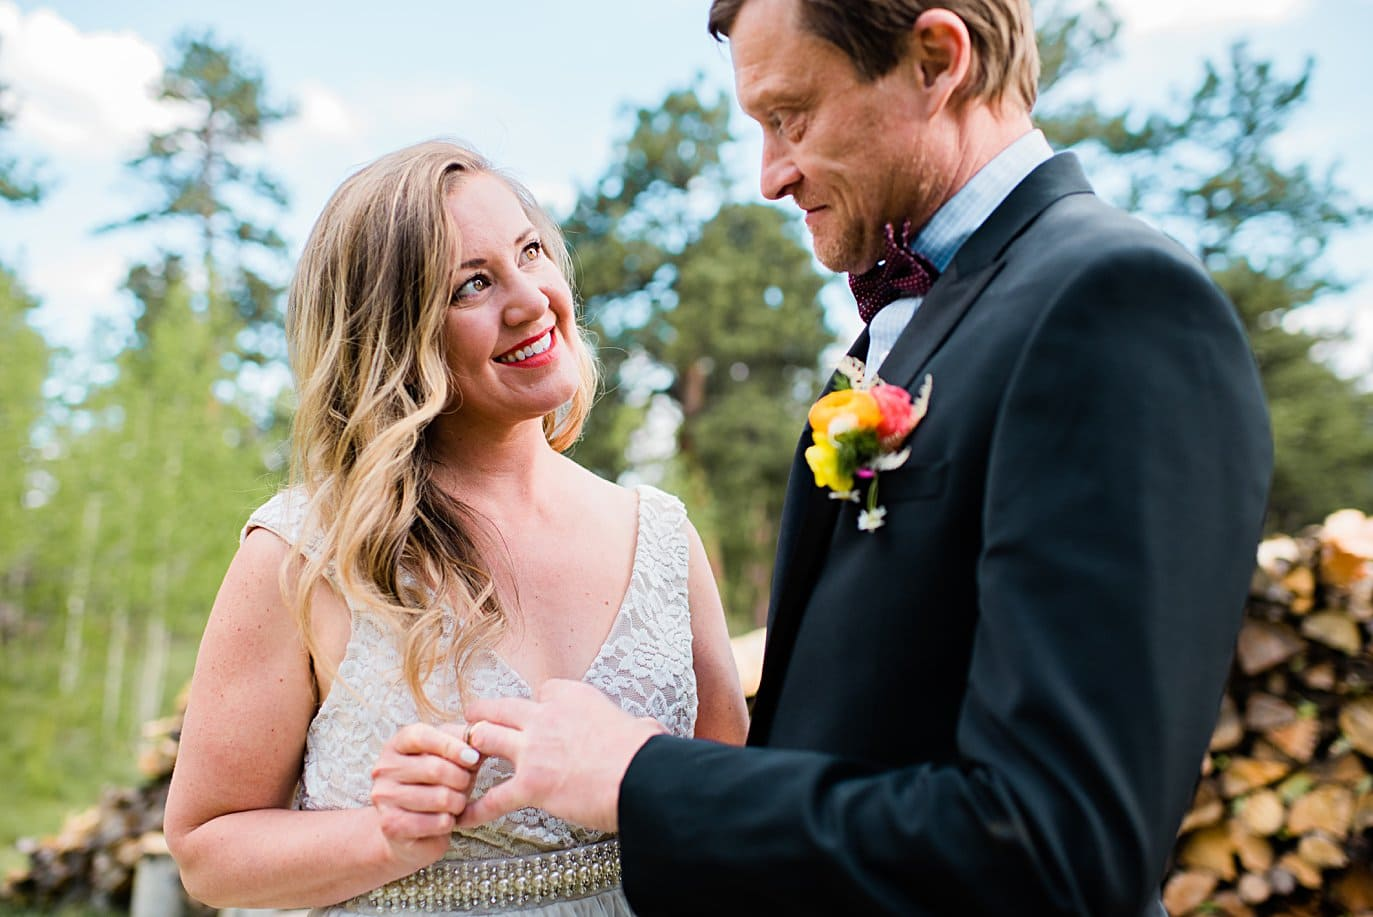 ring exchange during wedding vows at private property Golden elopement by Golden wedding photographer Jennie Crate